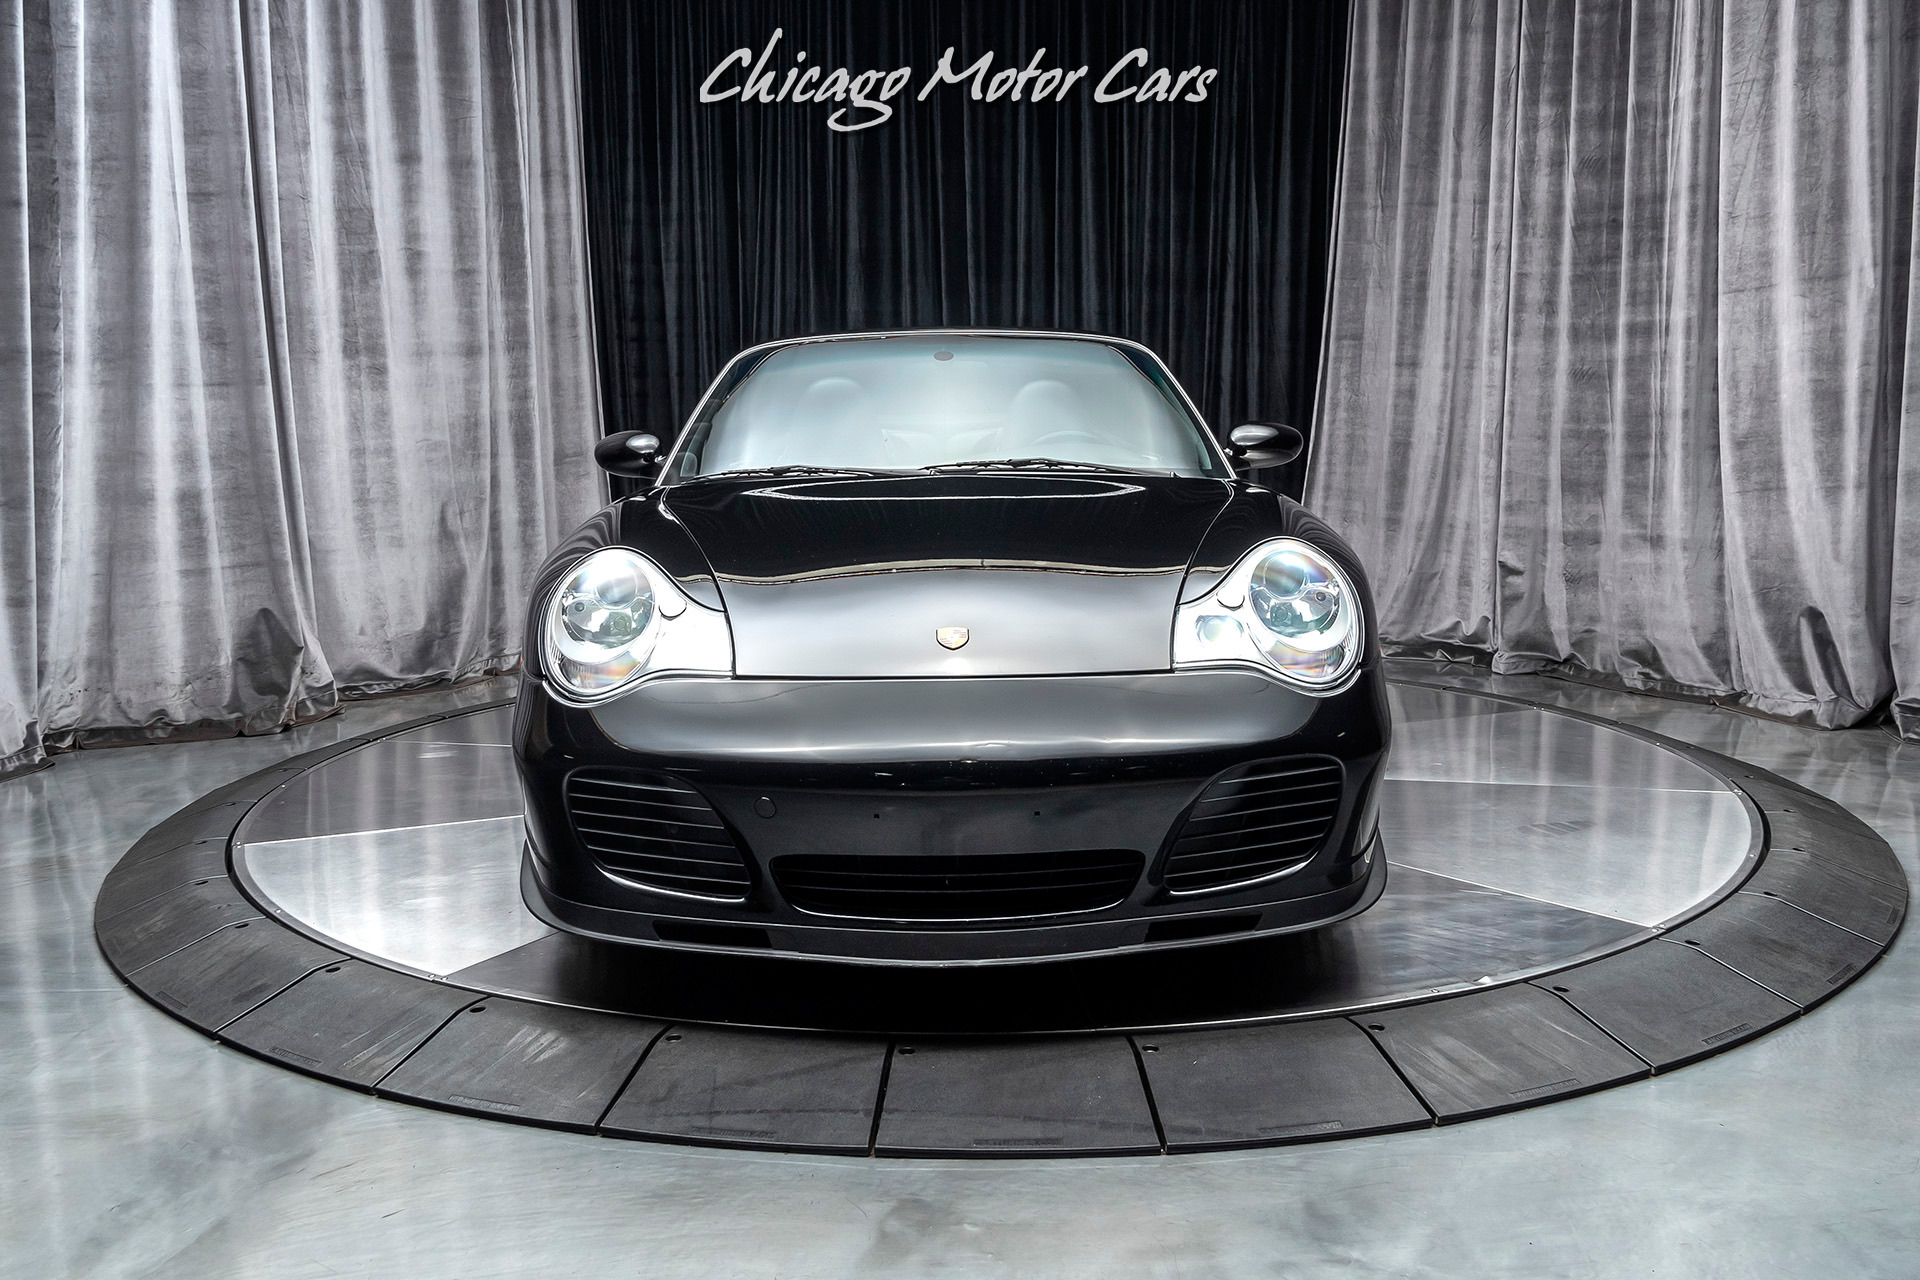 Used-2004-Porsche-911-Turbo-Cab-6-Speed-Manual